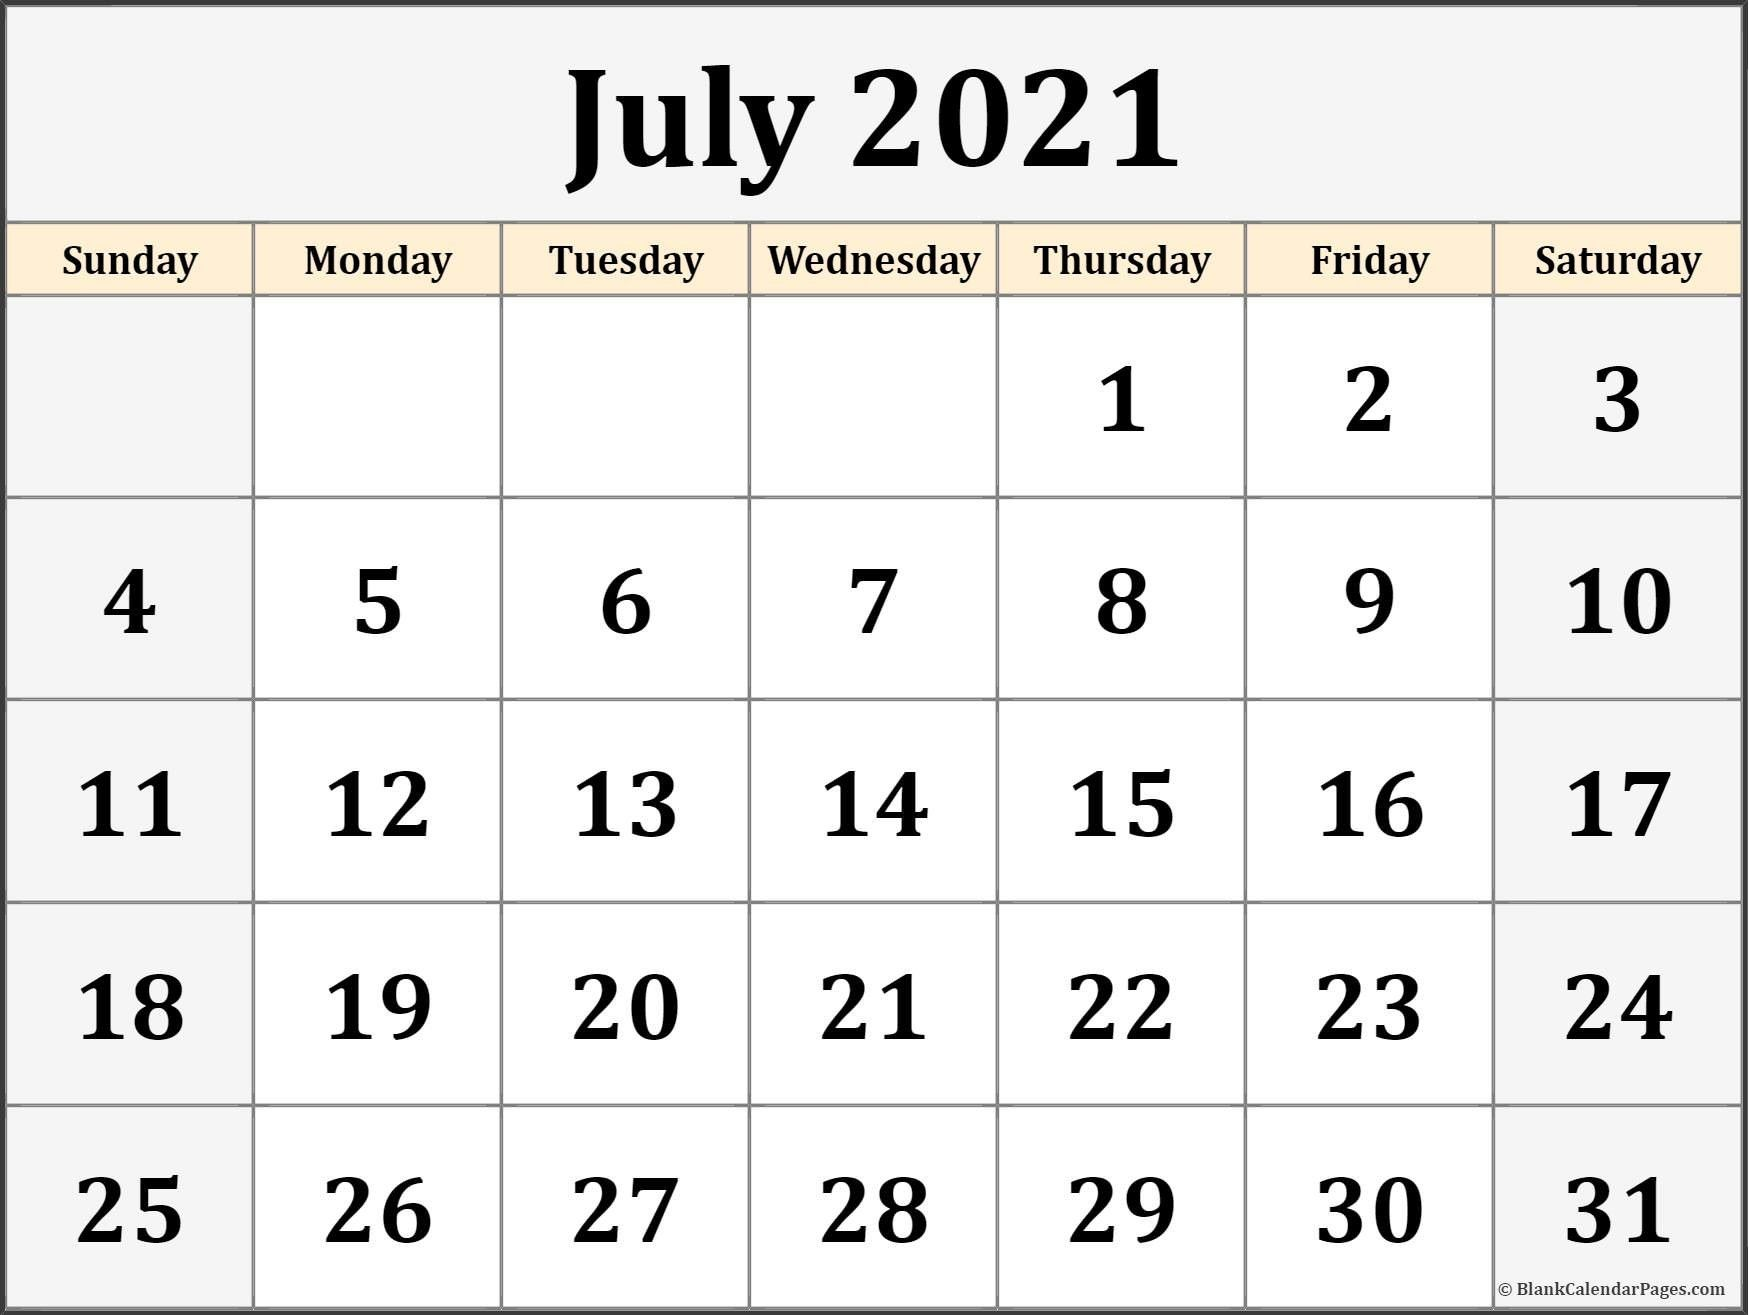 Printable Calendar For July 2021 July 2021 Calendar Printable Blank – Allowed to our blog site